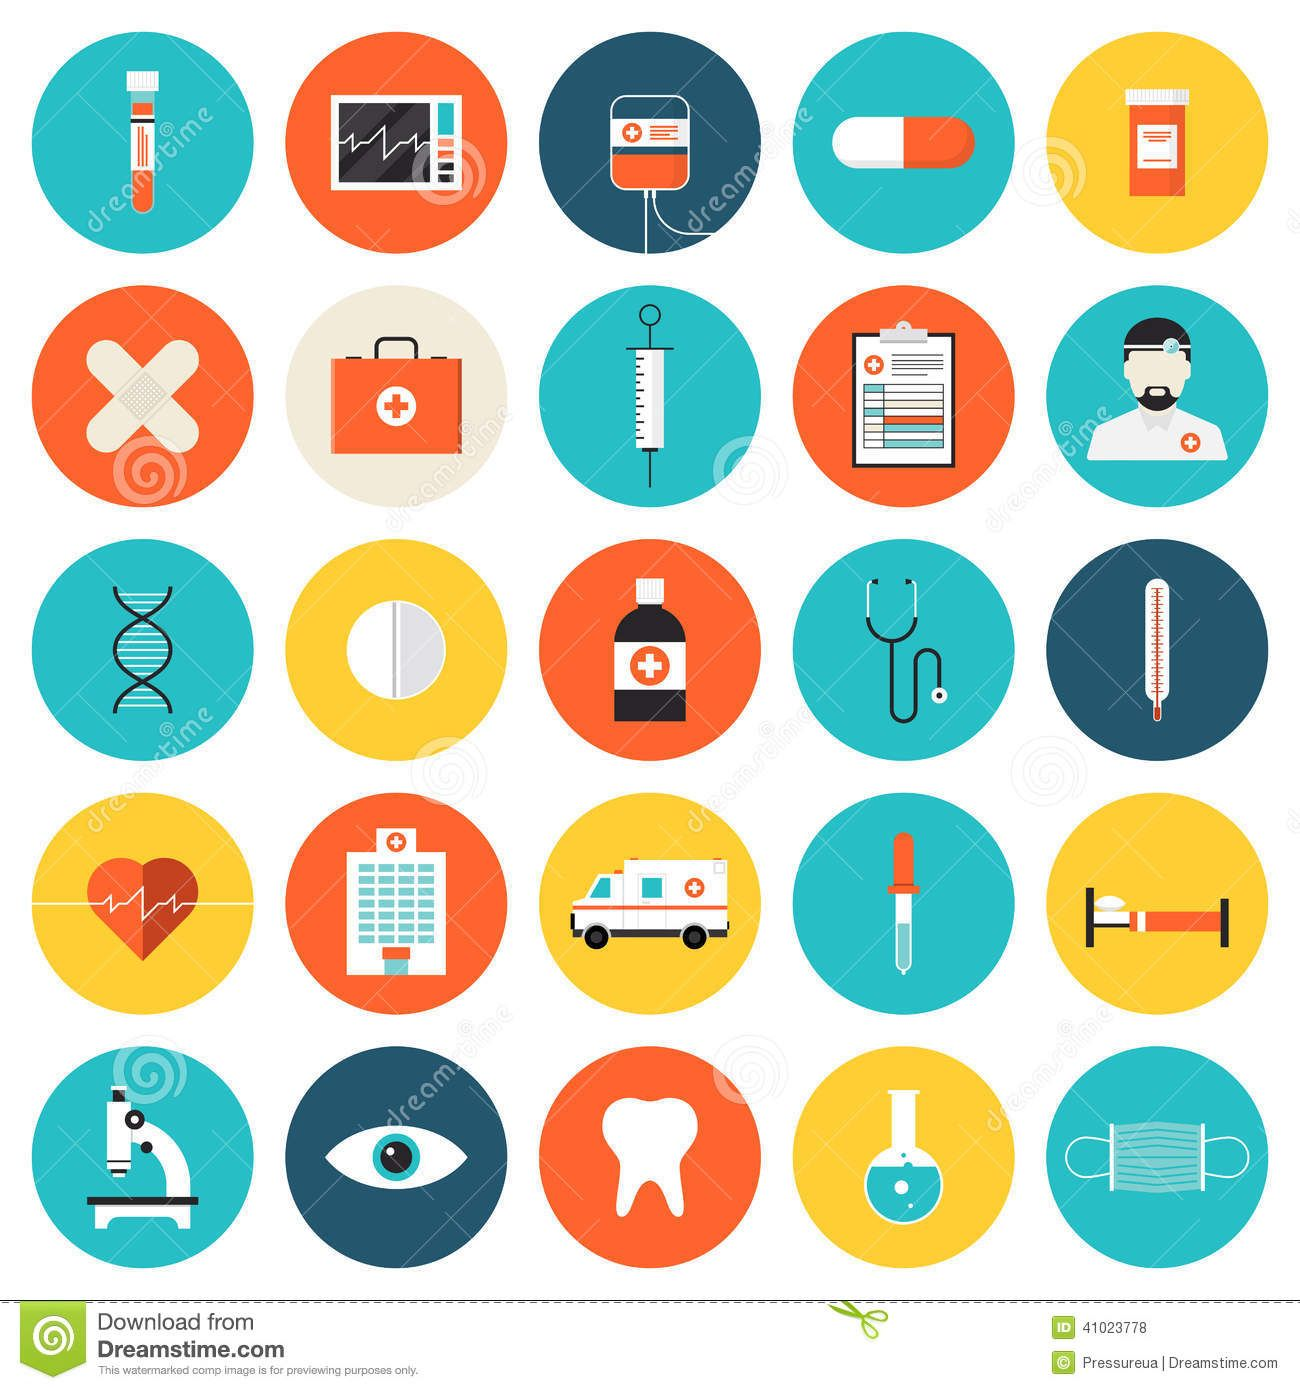 Medical healthcare flat icons set tools equipment science research flat icons set of medical tools and healthcare equipment science royalty free cliparts vectors and stock illustration biocorpaavc Choice Image